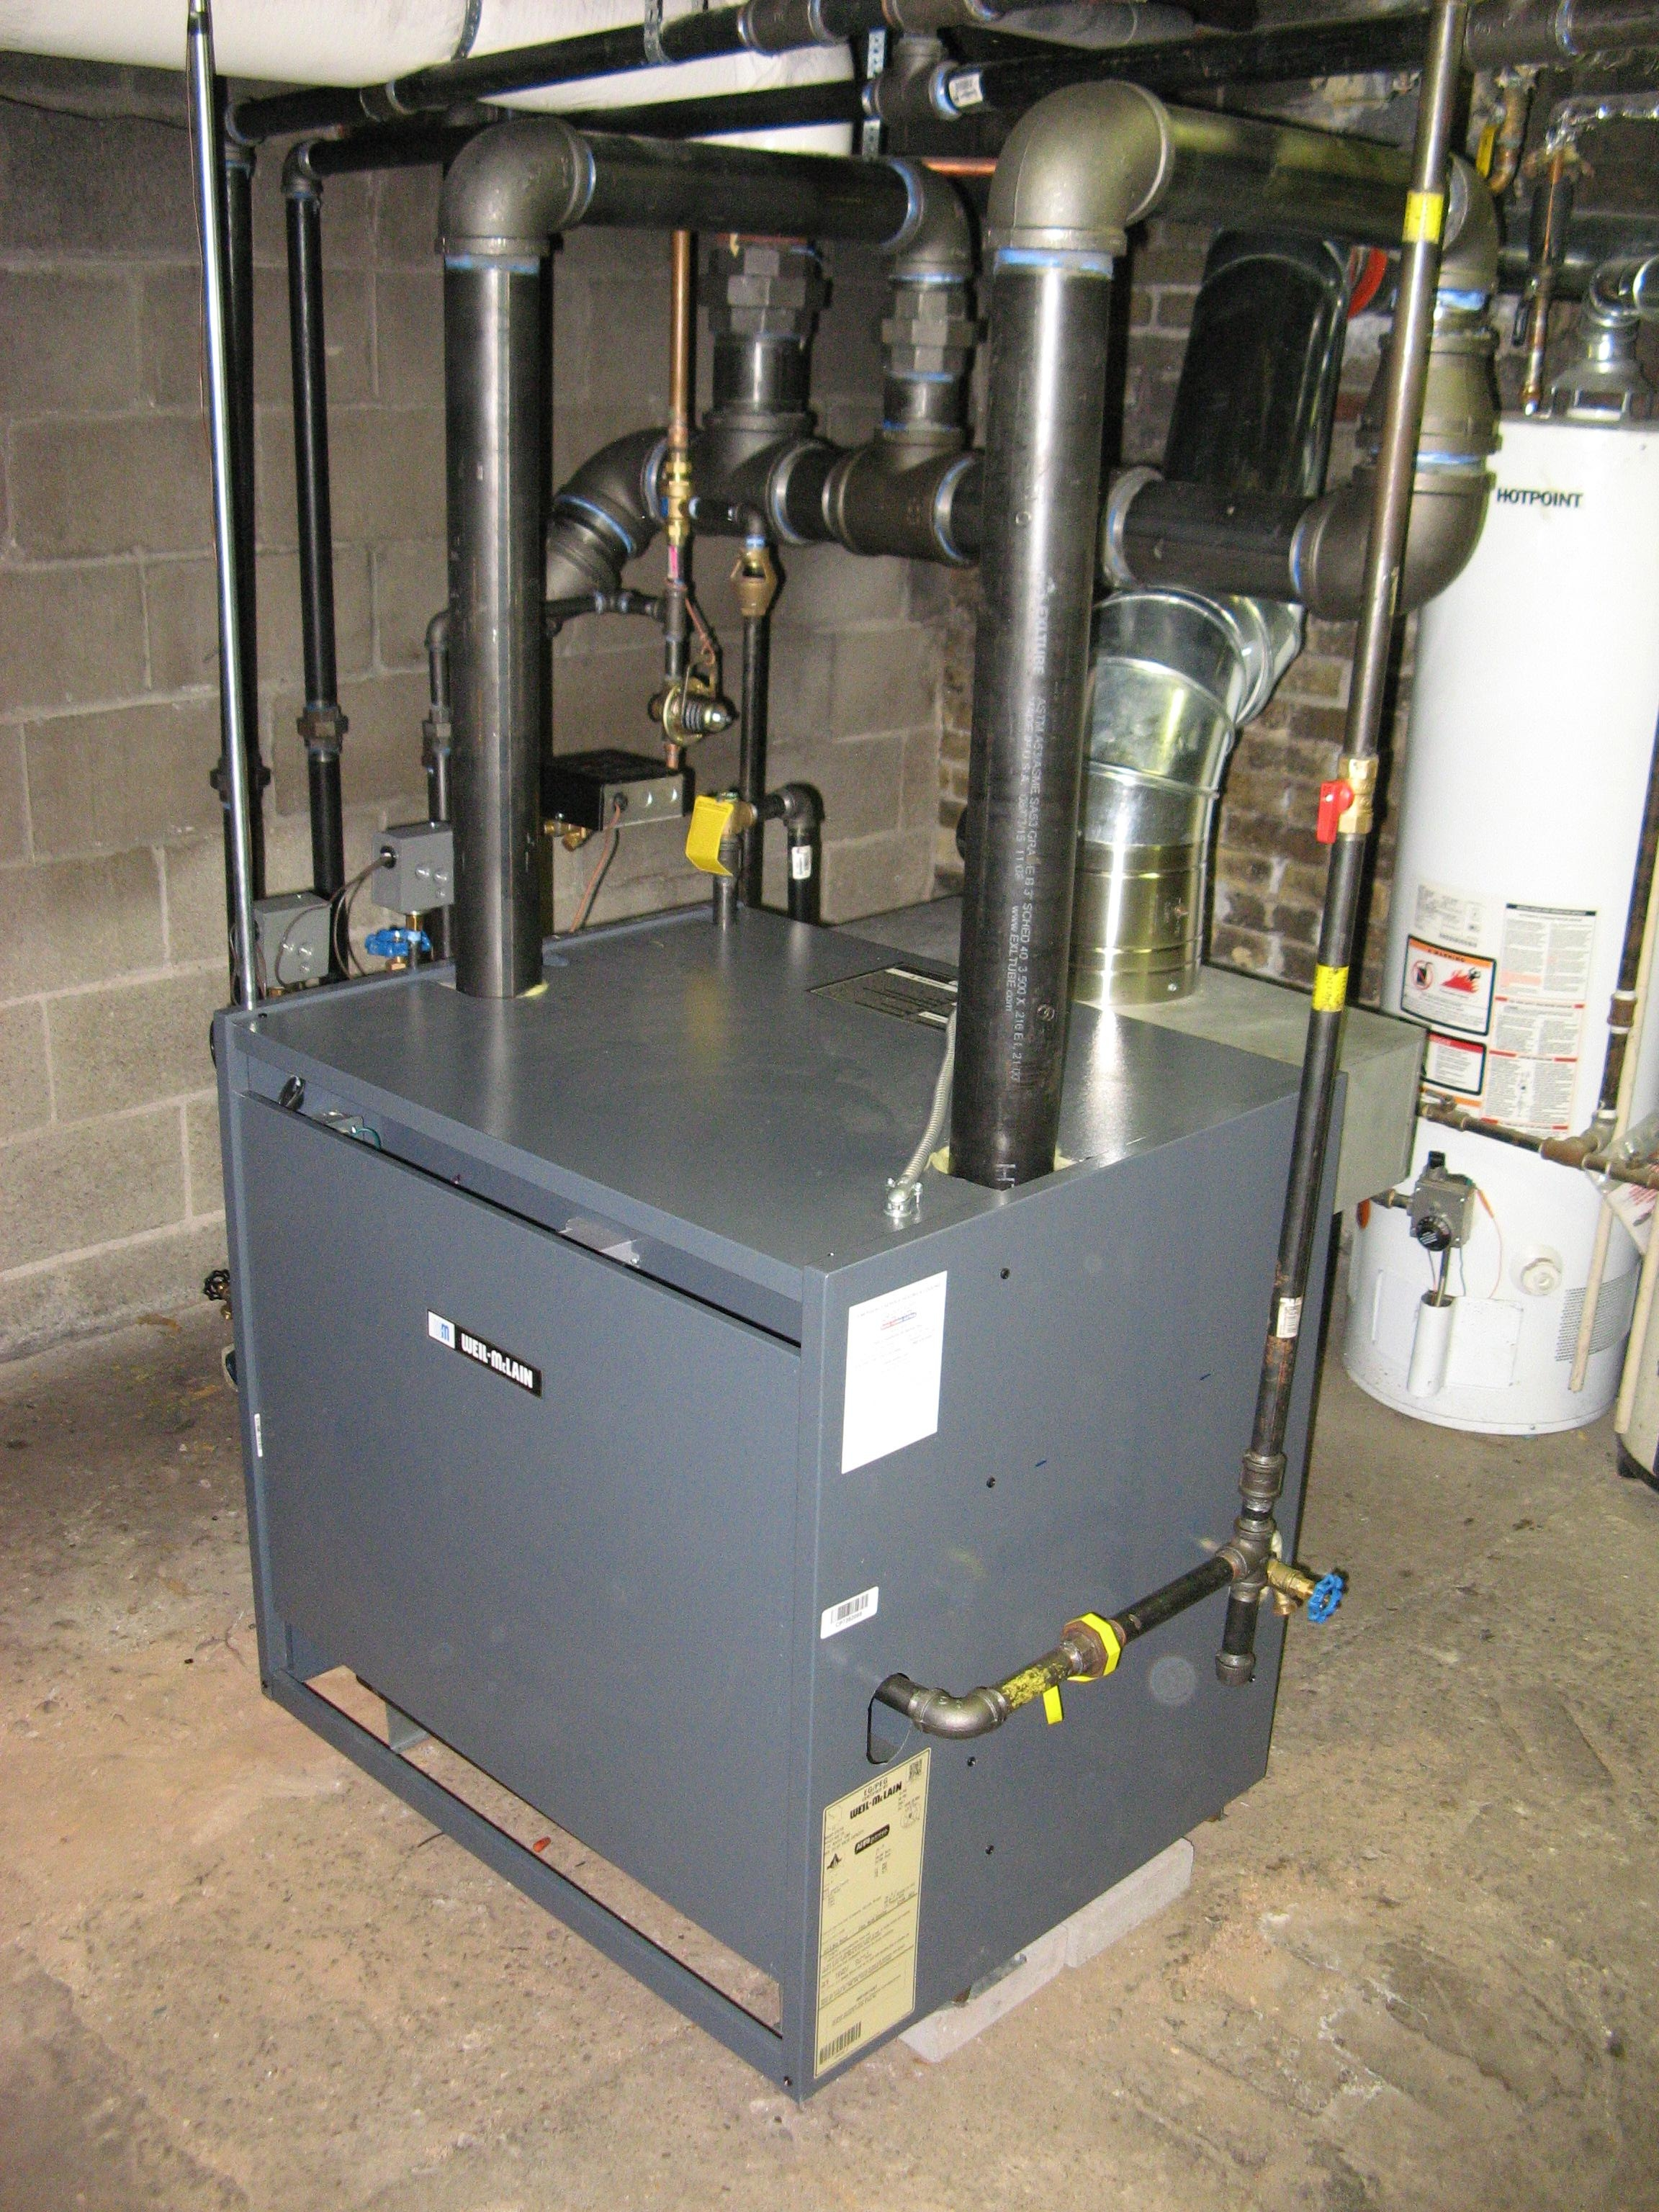 New Steam Boiler Installed-Feel Free to Comment — Heating Help: The Wall